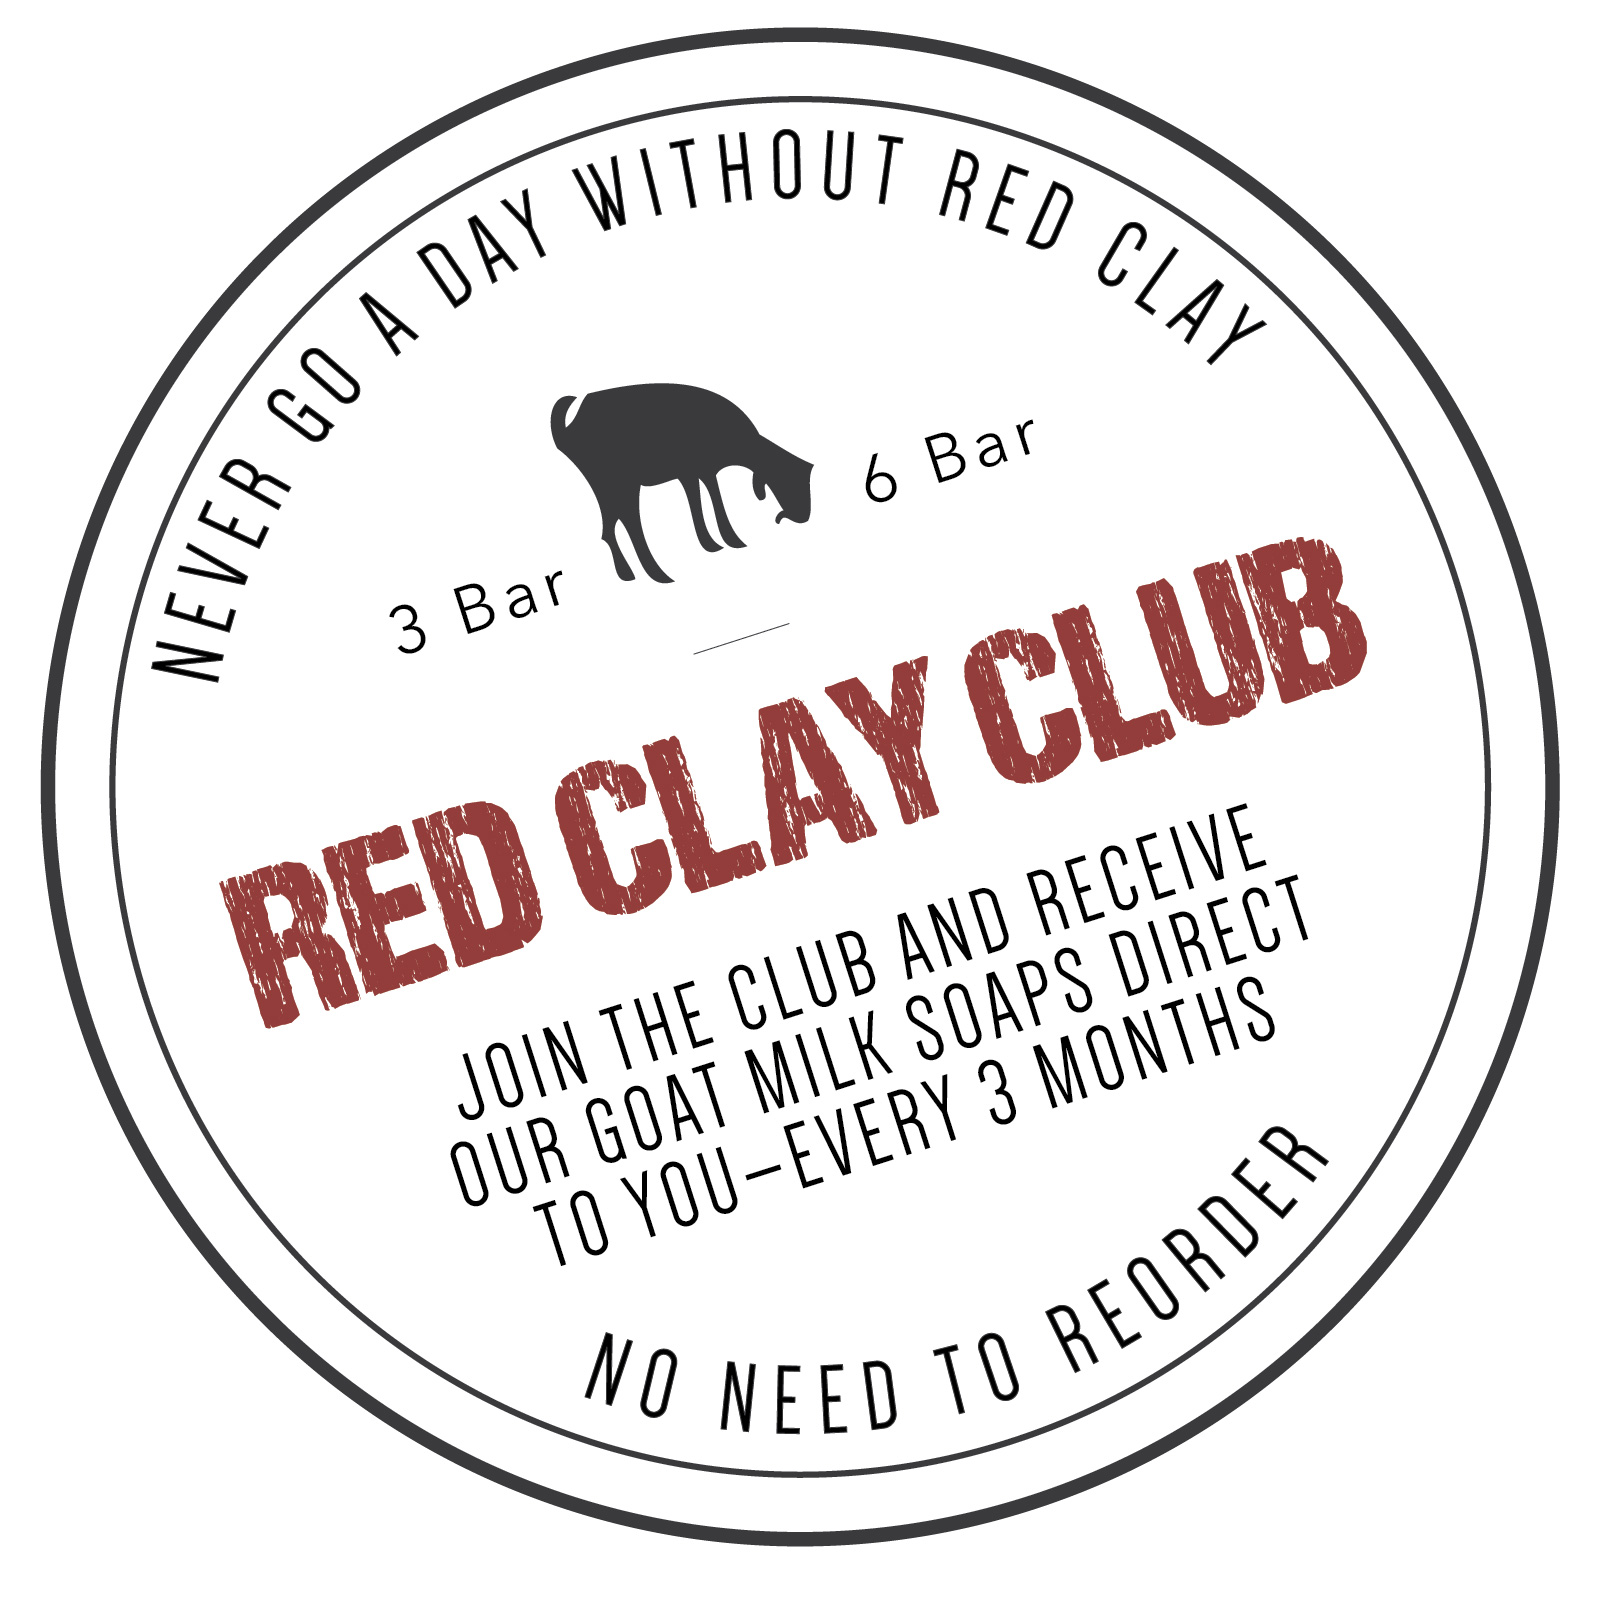 red clay club